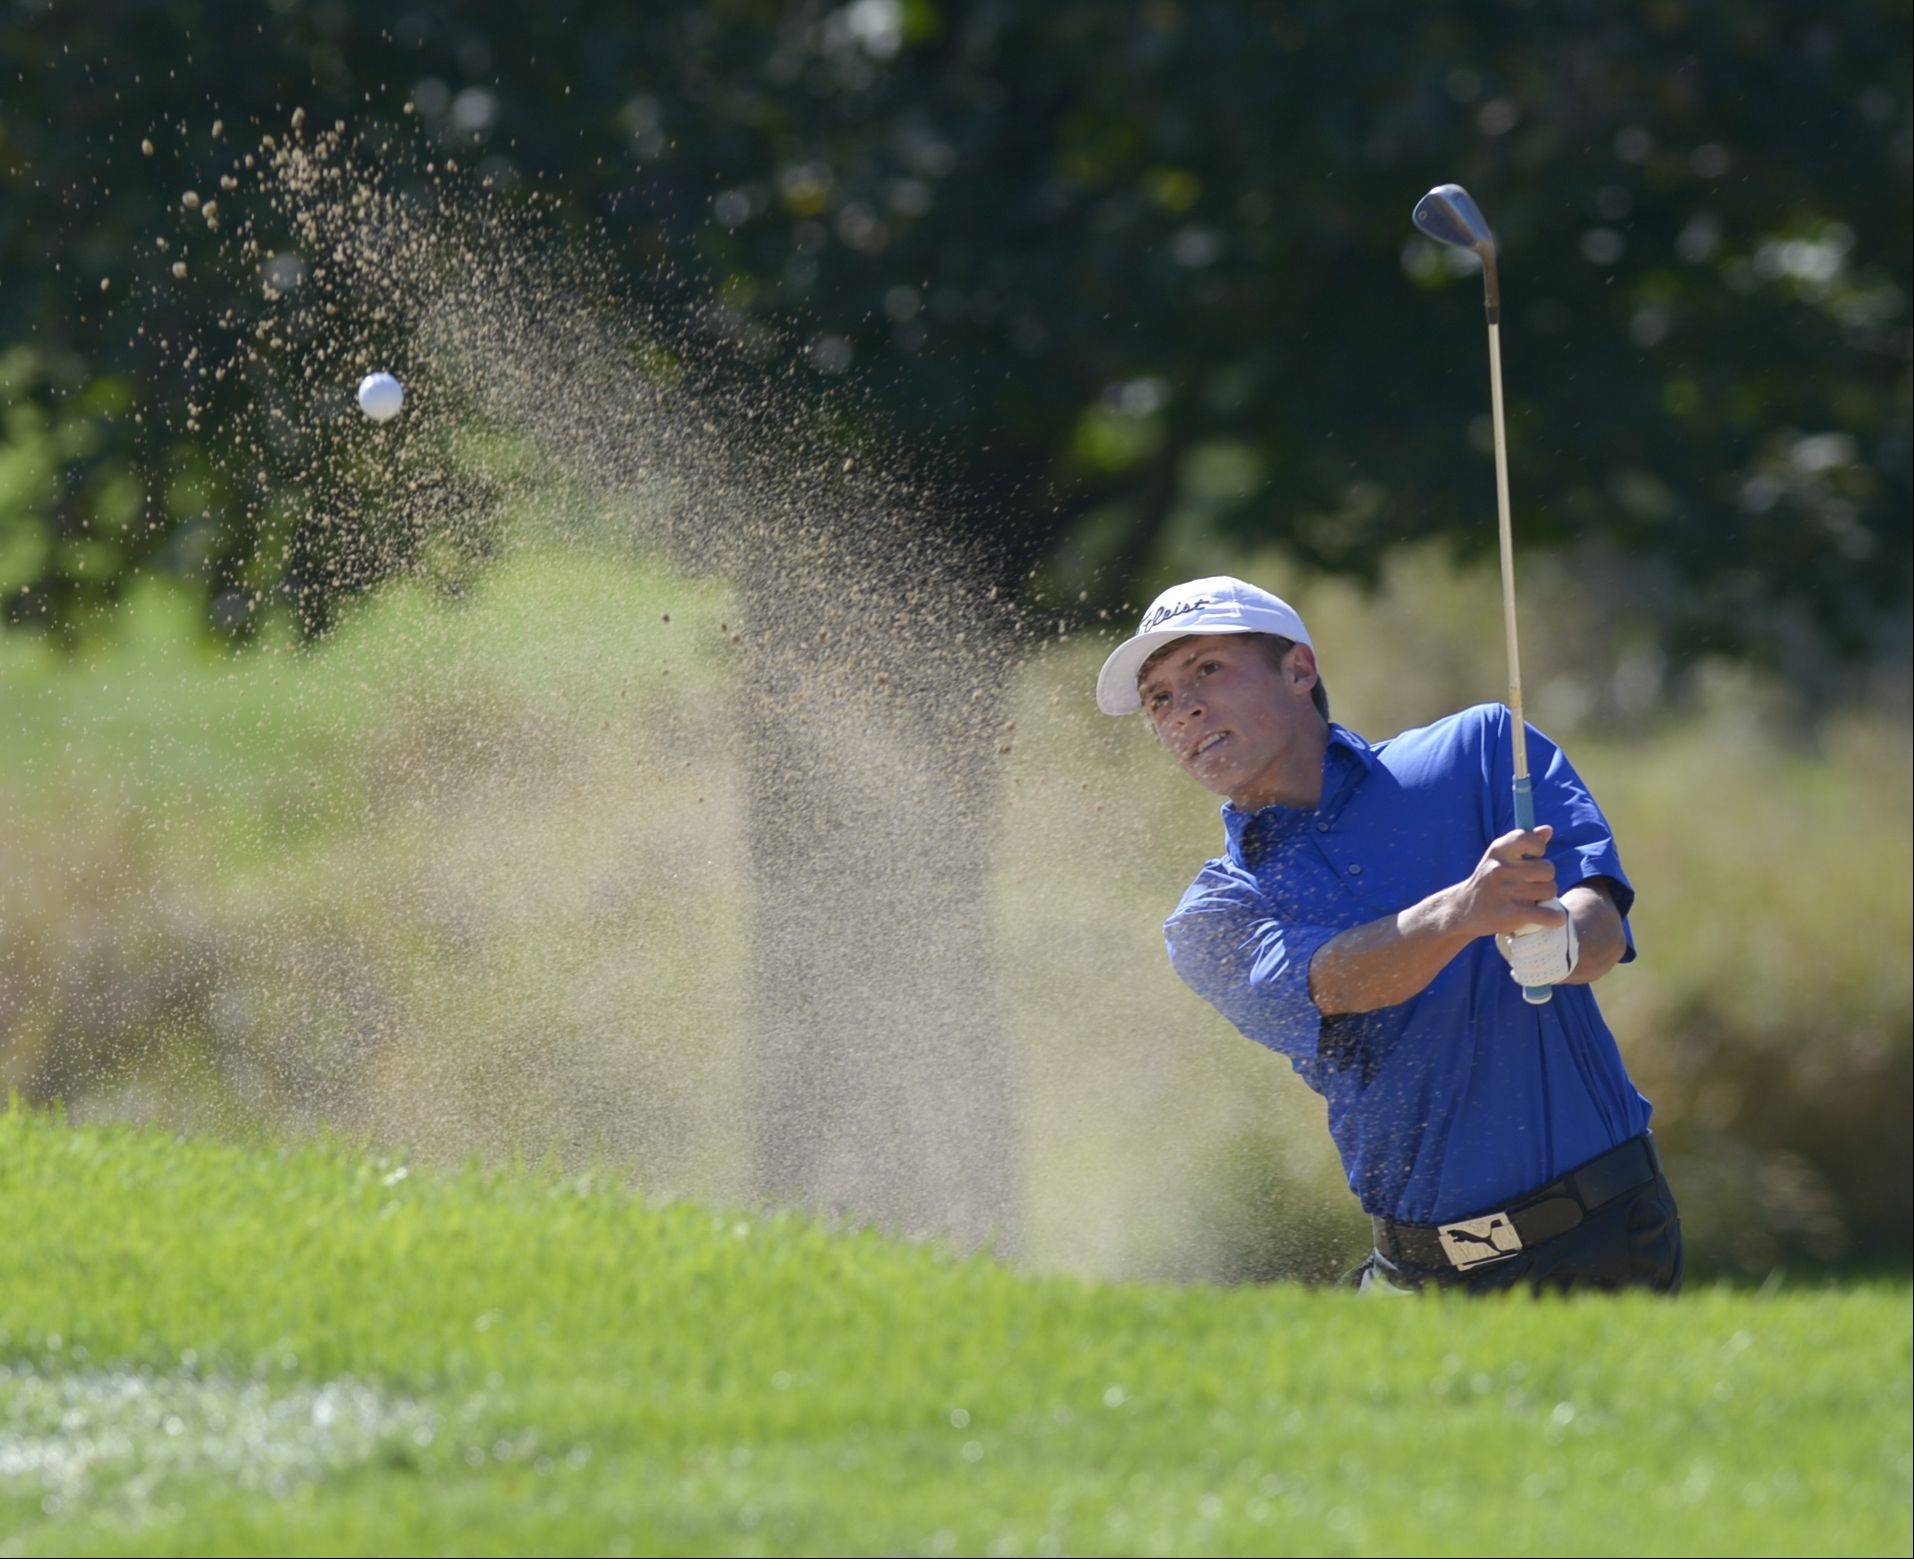 Lyons Township's Matt Walsh chips out of the sand during the Class 3A Naperville Central sectional boys golf tournament on Monday at Springbrook Golf Course in Naperville.